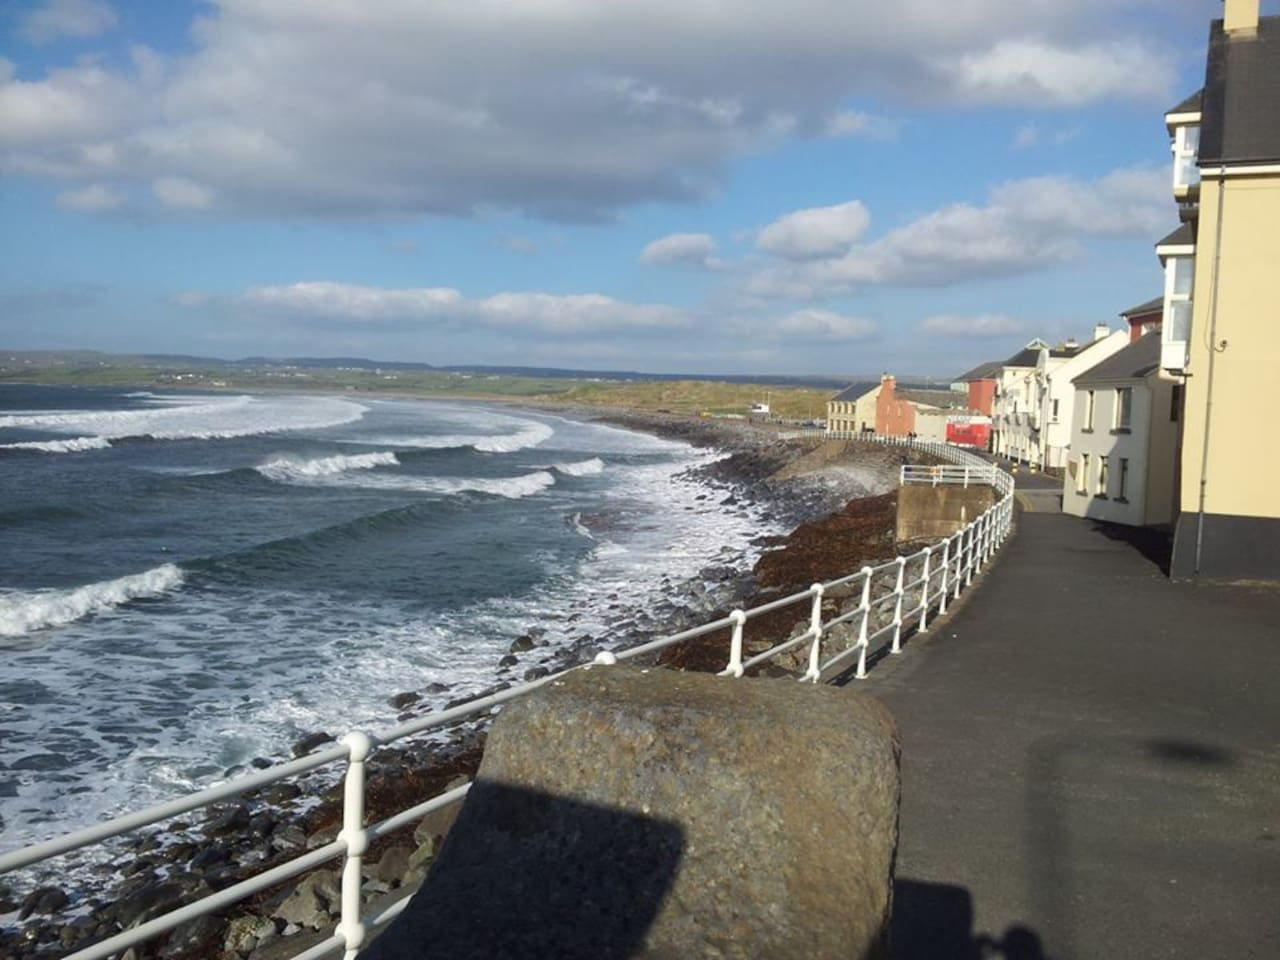 Lahinch Promenade - 4 minutes walk away